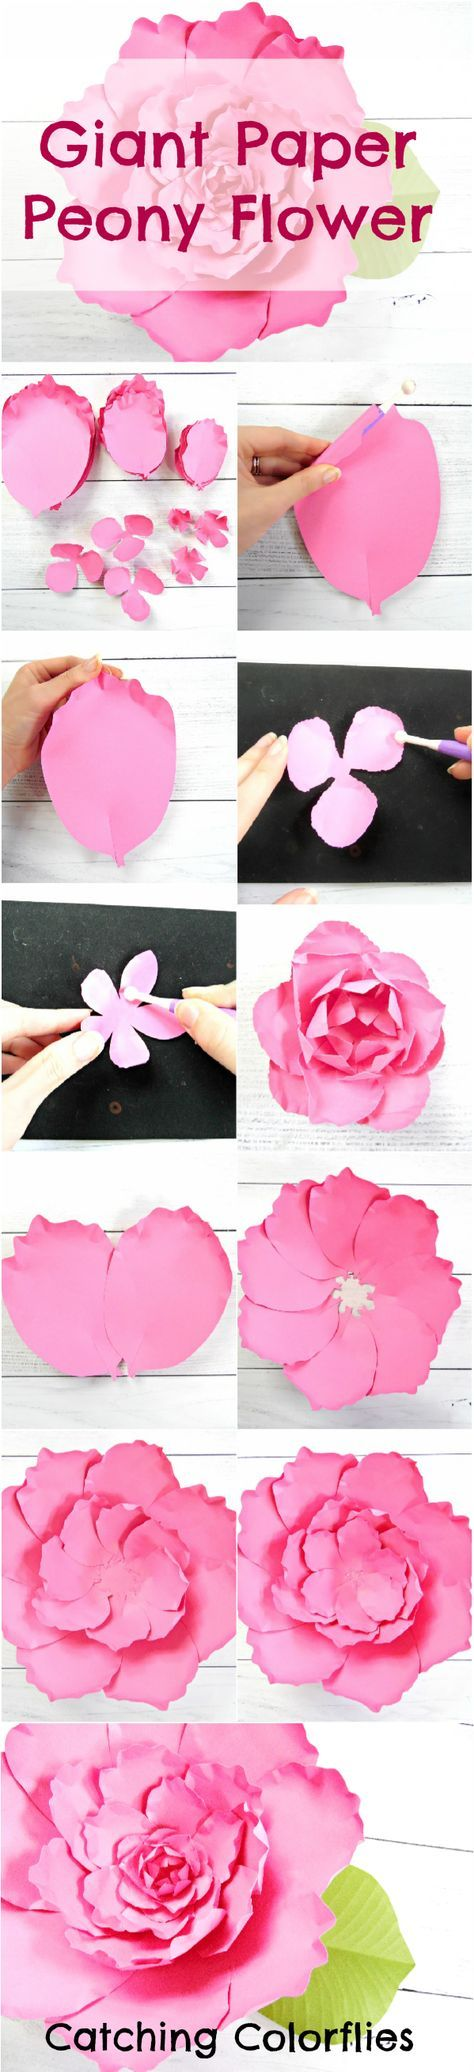 Giant paper peony templates paper peonies peony flower and paper giant paper flower peony how to make large paper peony flowers printable flower templates mightylinksfo Choice Image